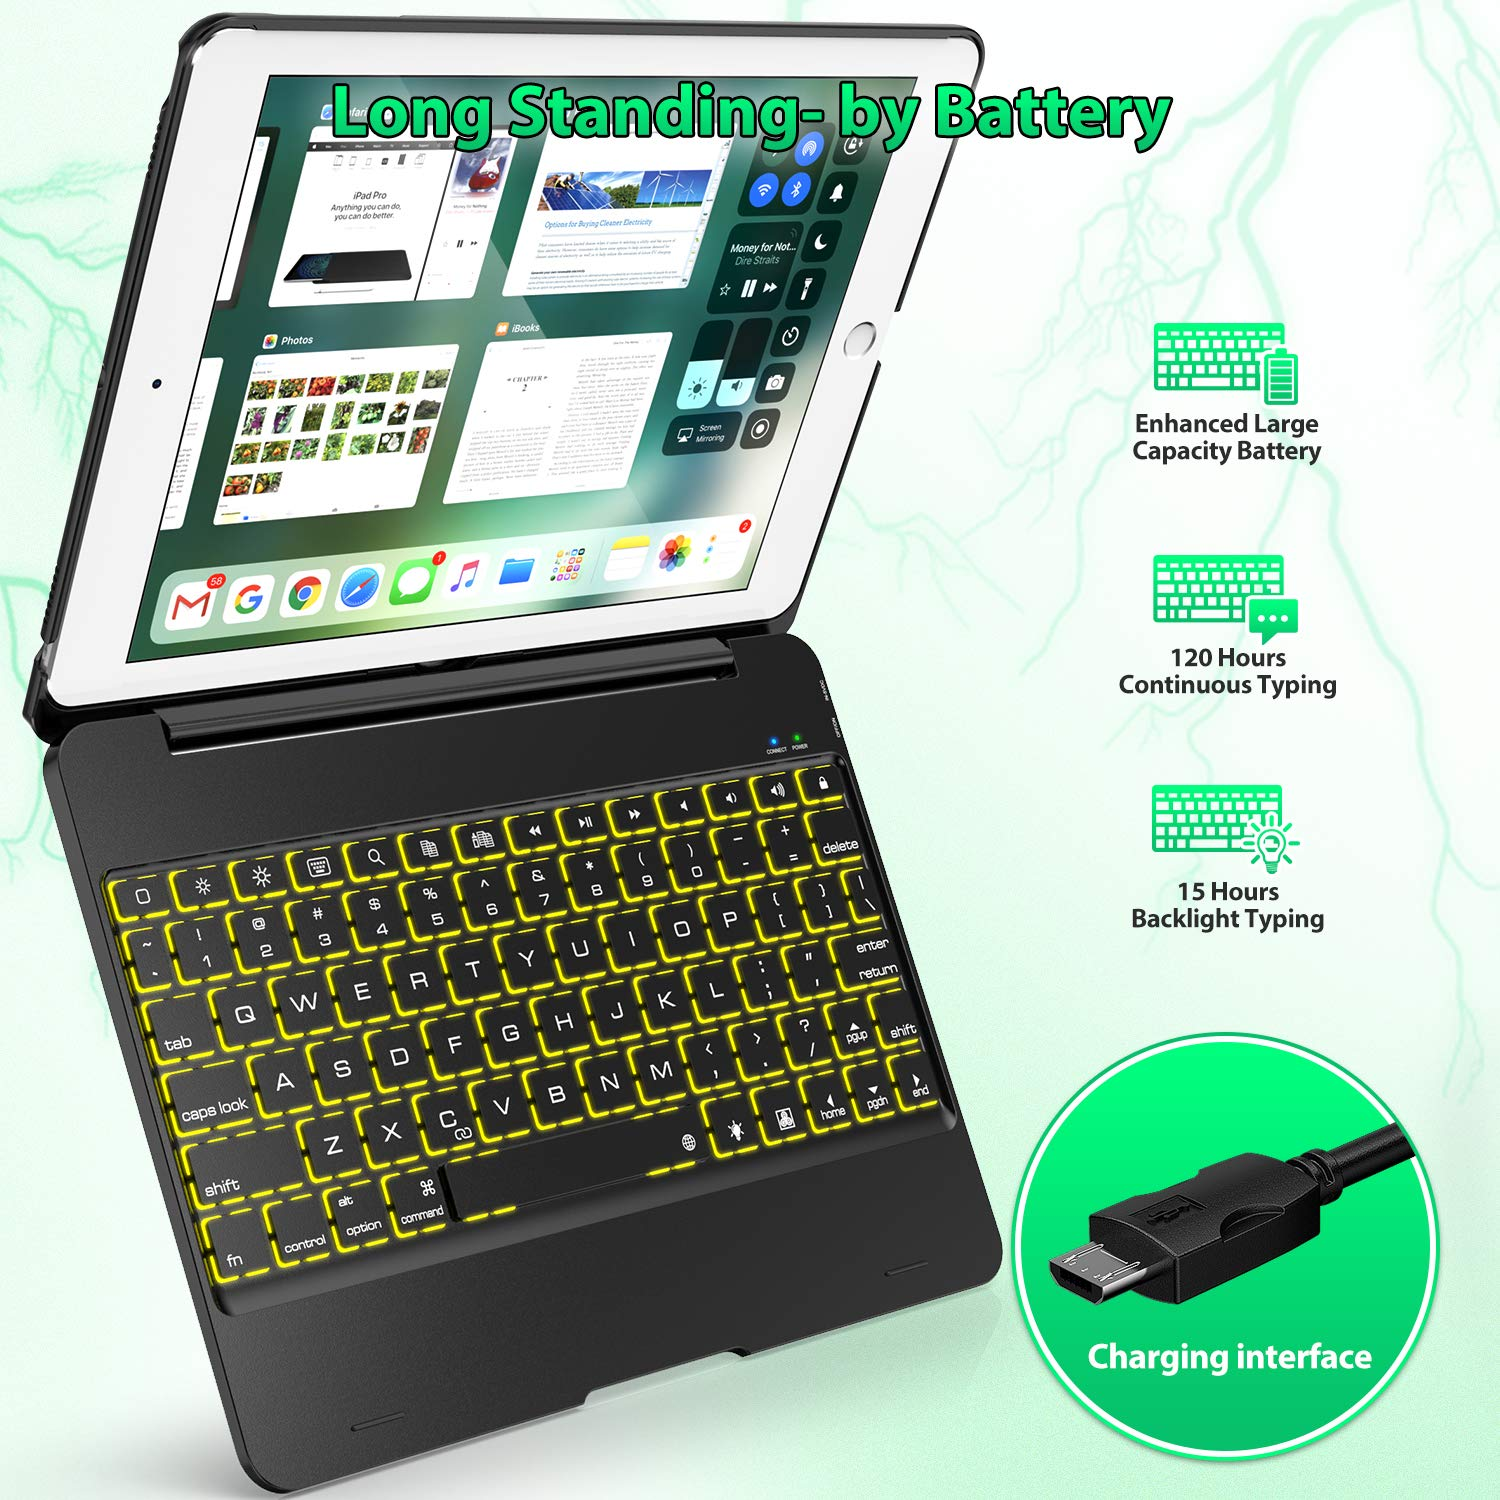 Keyboard Case Compatible with iPad 2018 (6th Gen), iPad 2017 (5th Gen), iPad Pro 9.7,'' and iPad Air 1 and 2 - Features Detachable Design, Rotating Hinge and Adjustable Backlight (Black) by Tezzionas (Image #5)